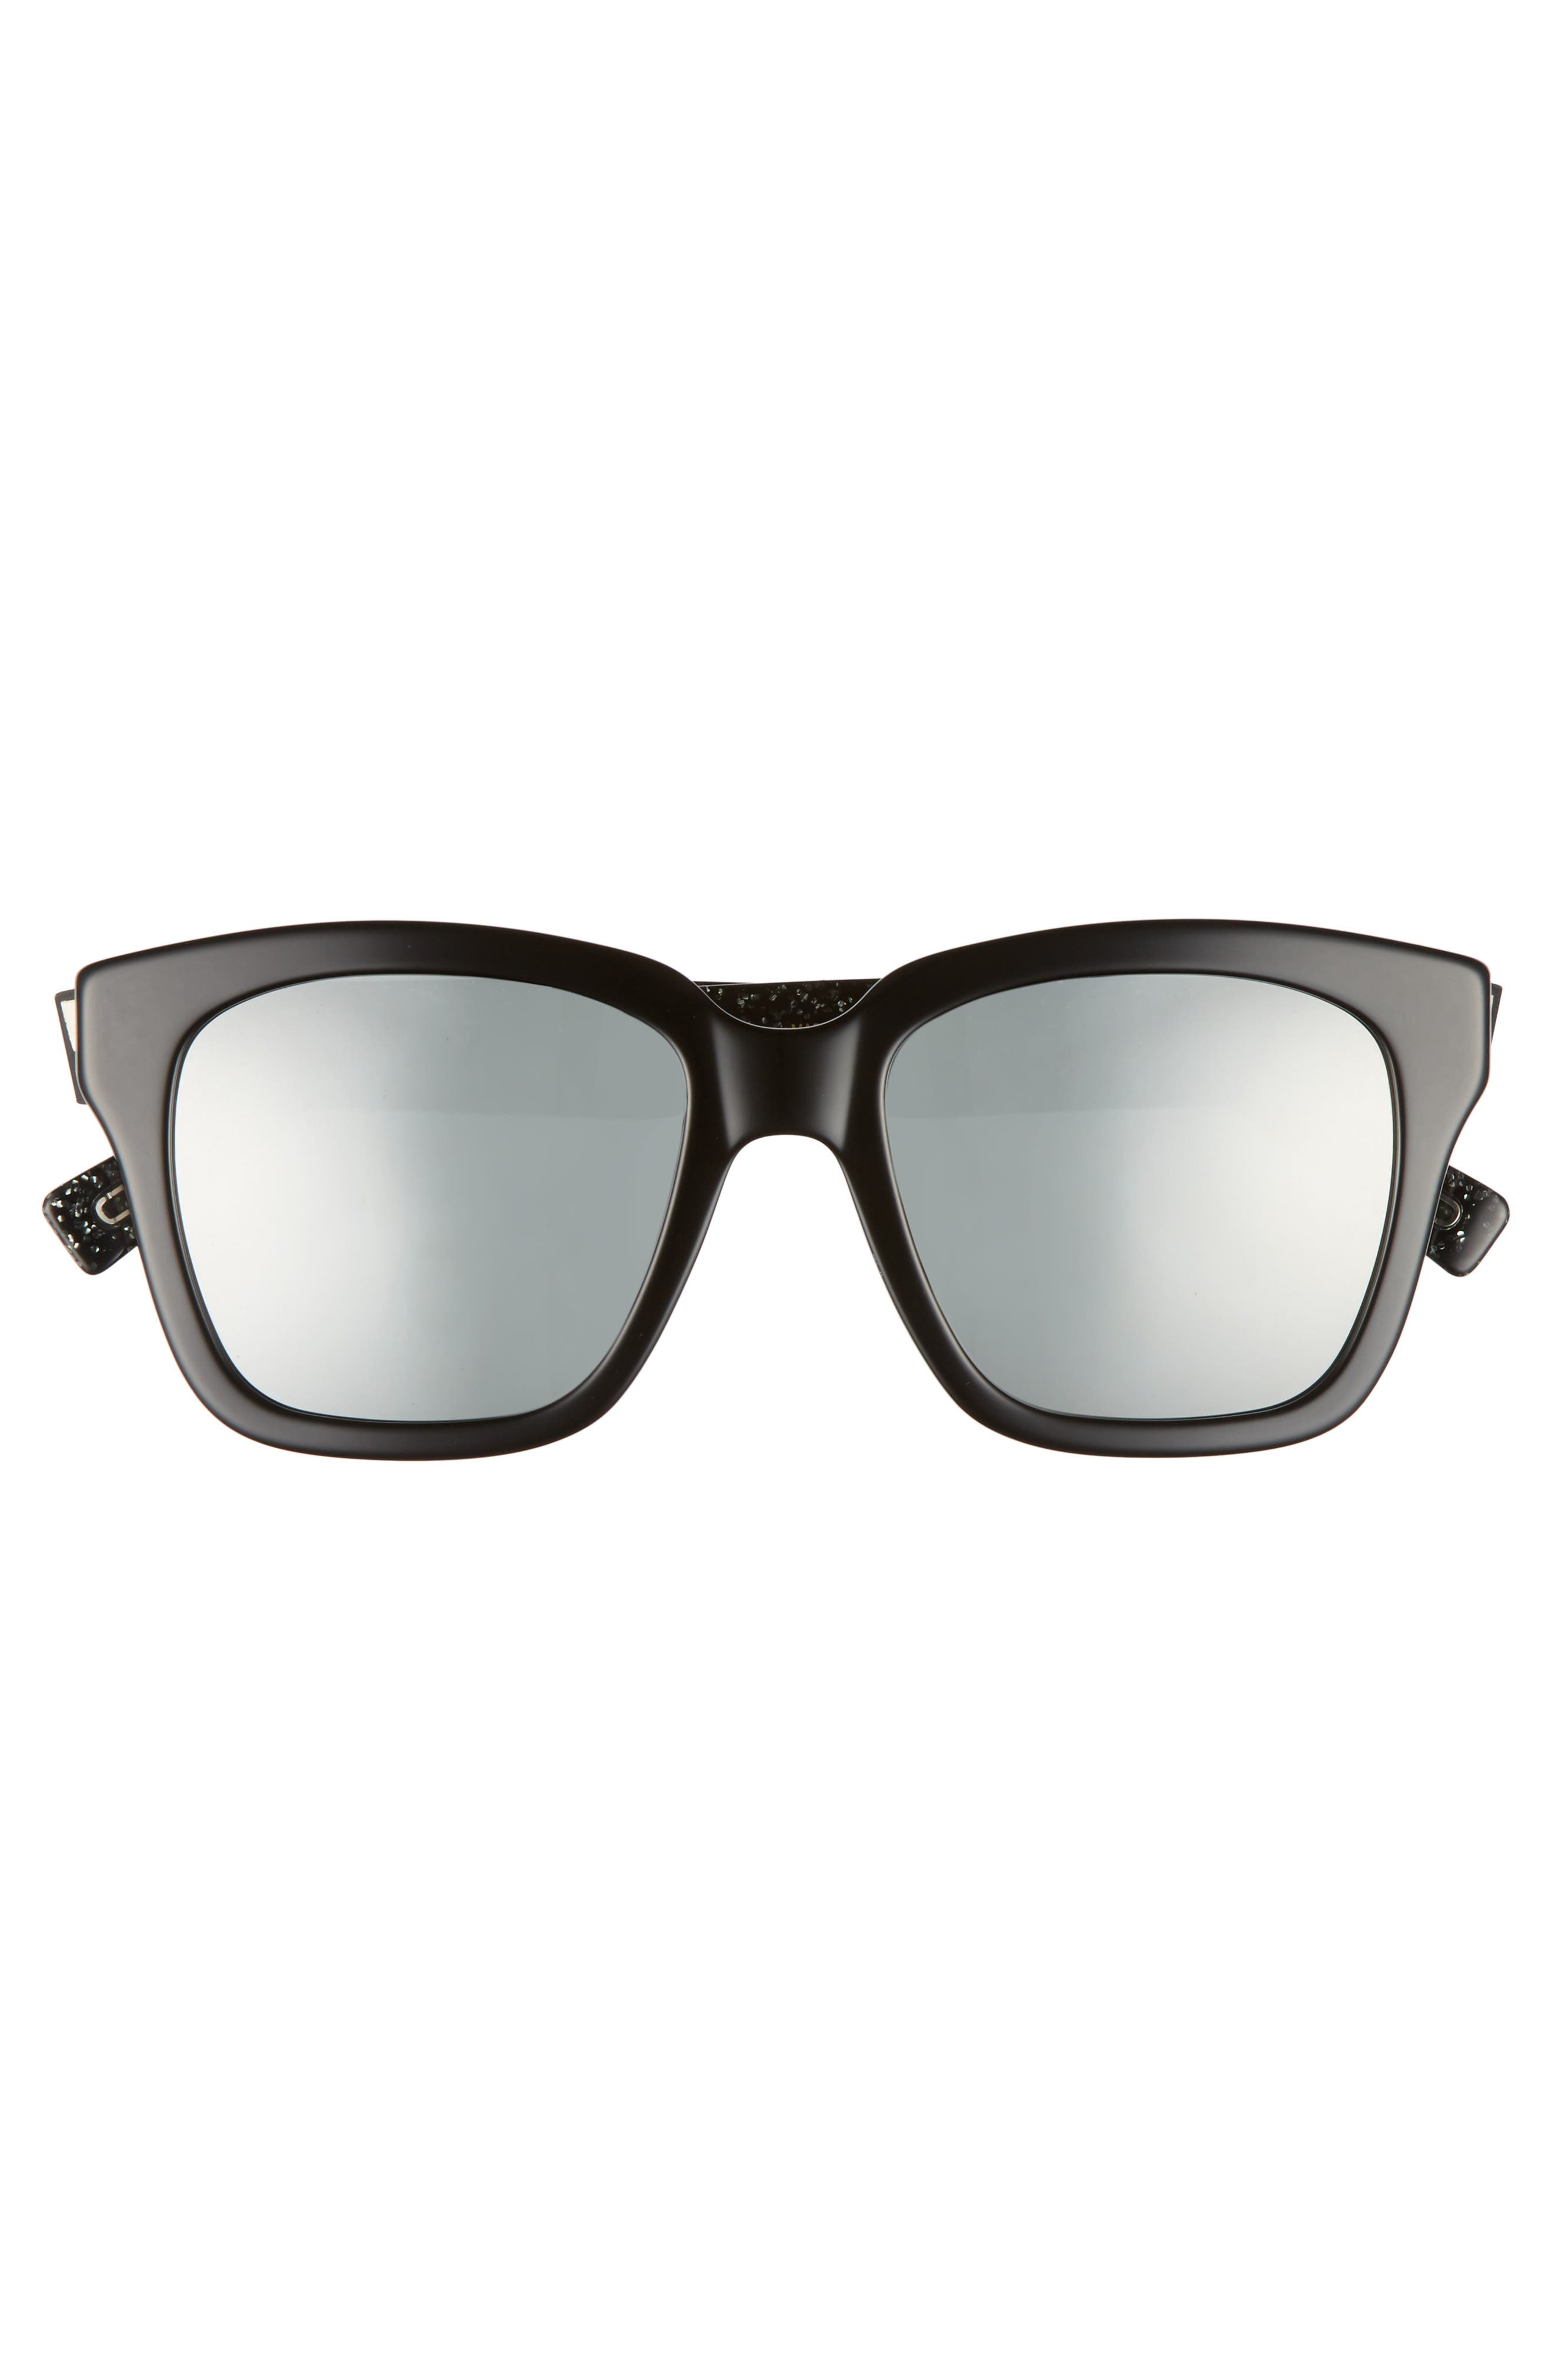 Alternate Image 3  - MARC JACOBS 52mm Square Sunglasses